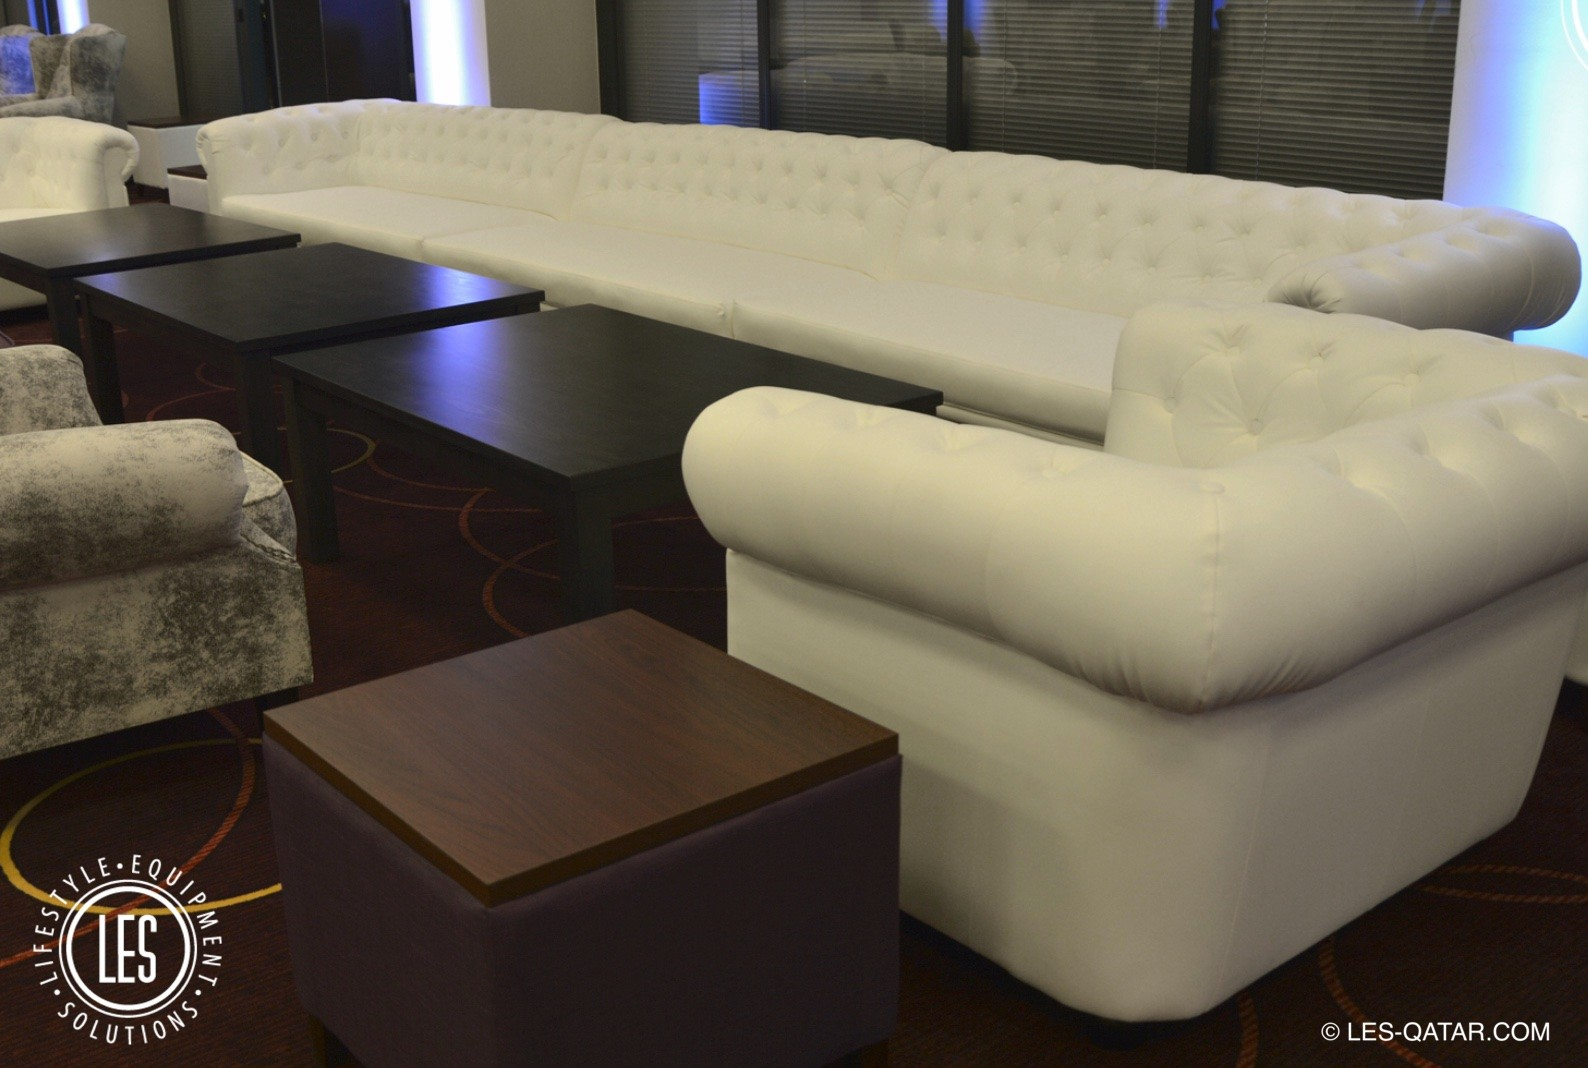 Xxl Chesterfield Sofa Lifestyle Equipment Solutions Les Qatar Les Xxl